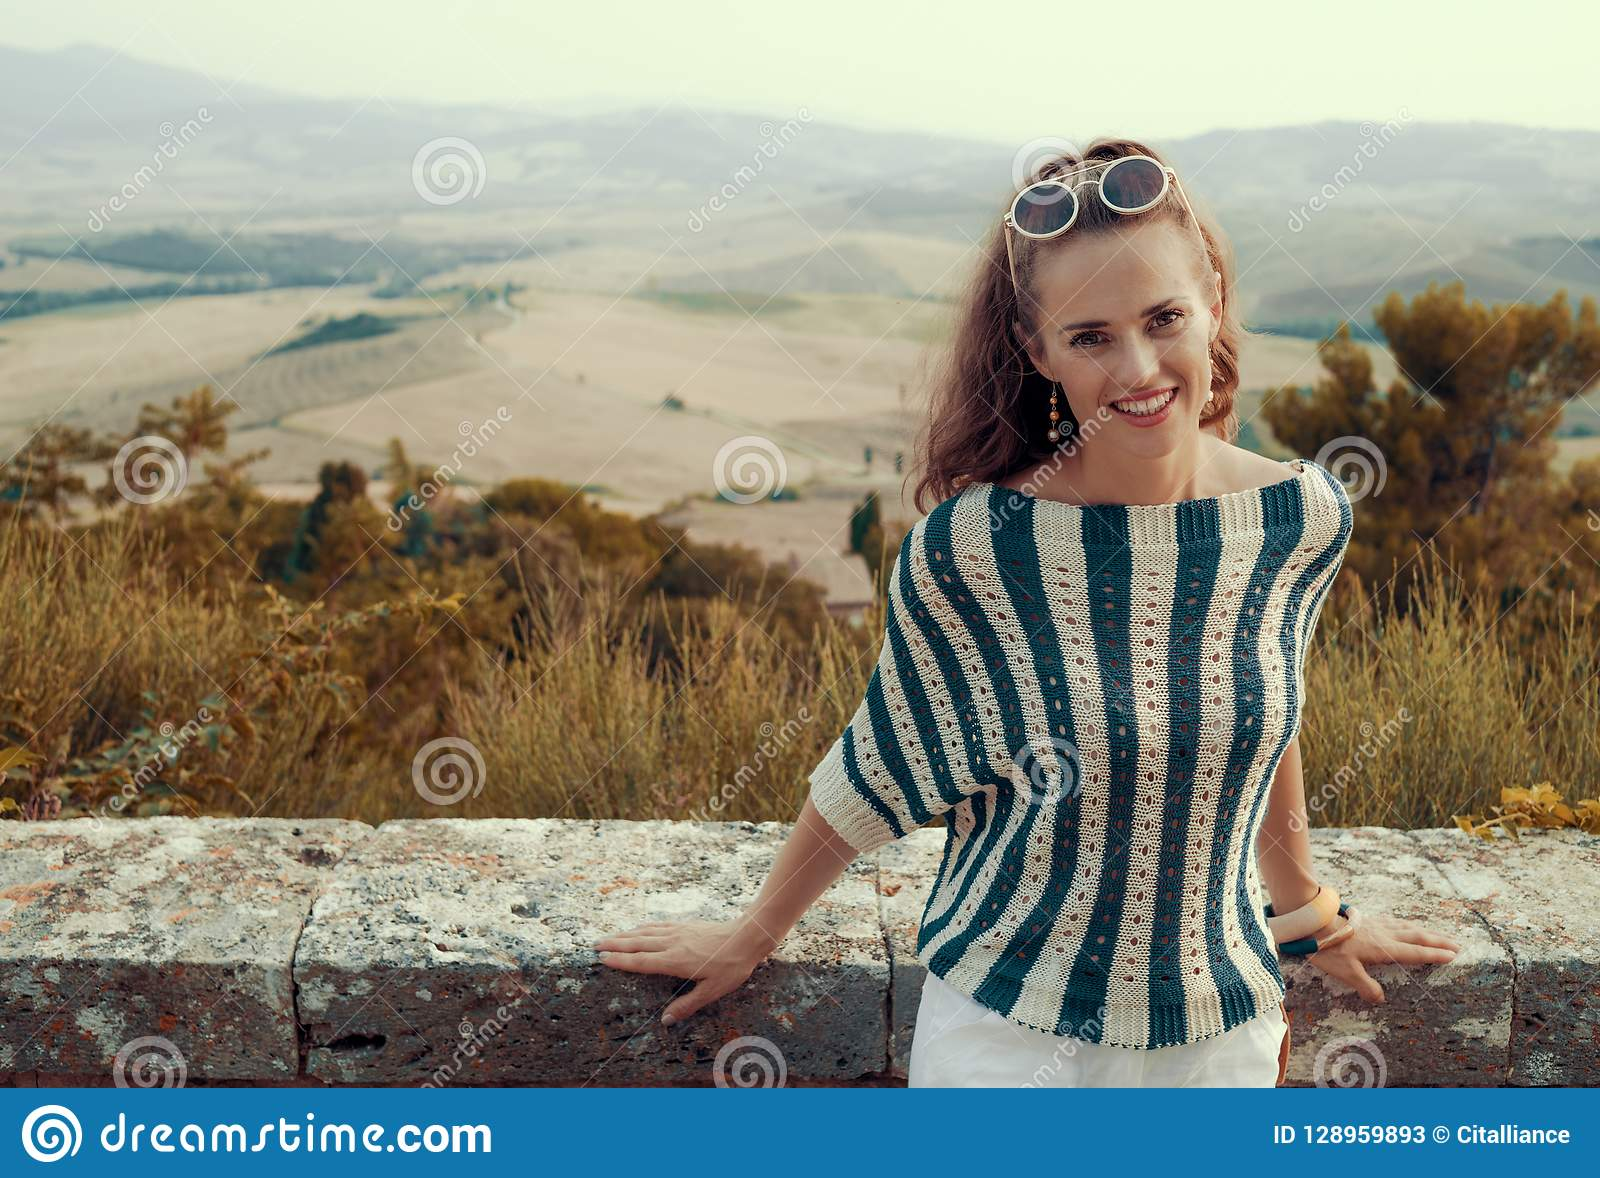 Smiling young tourist woman in front of scenery of Tuscany